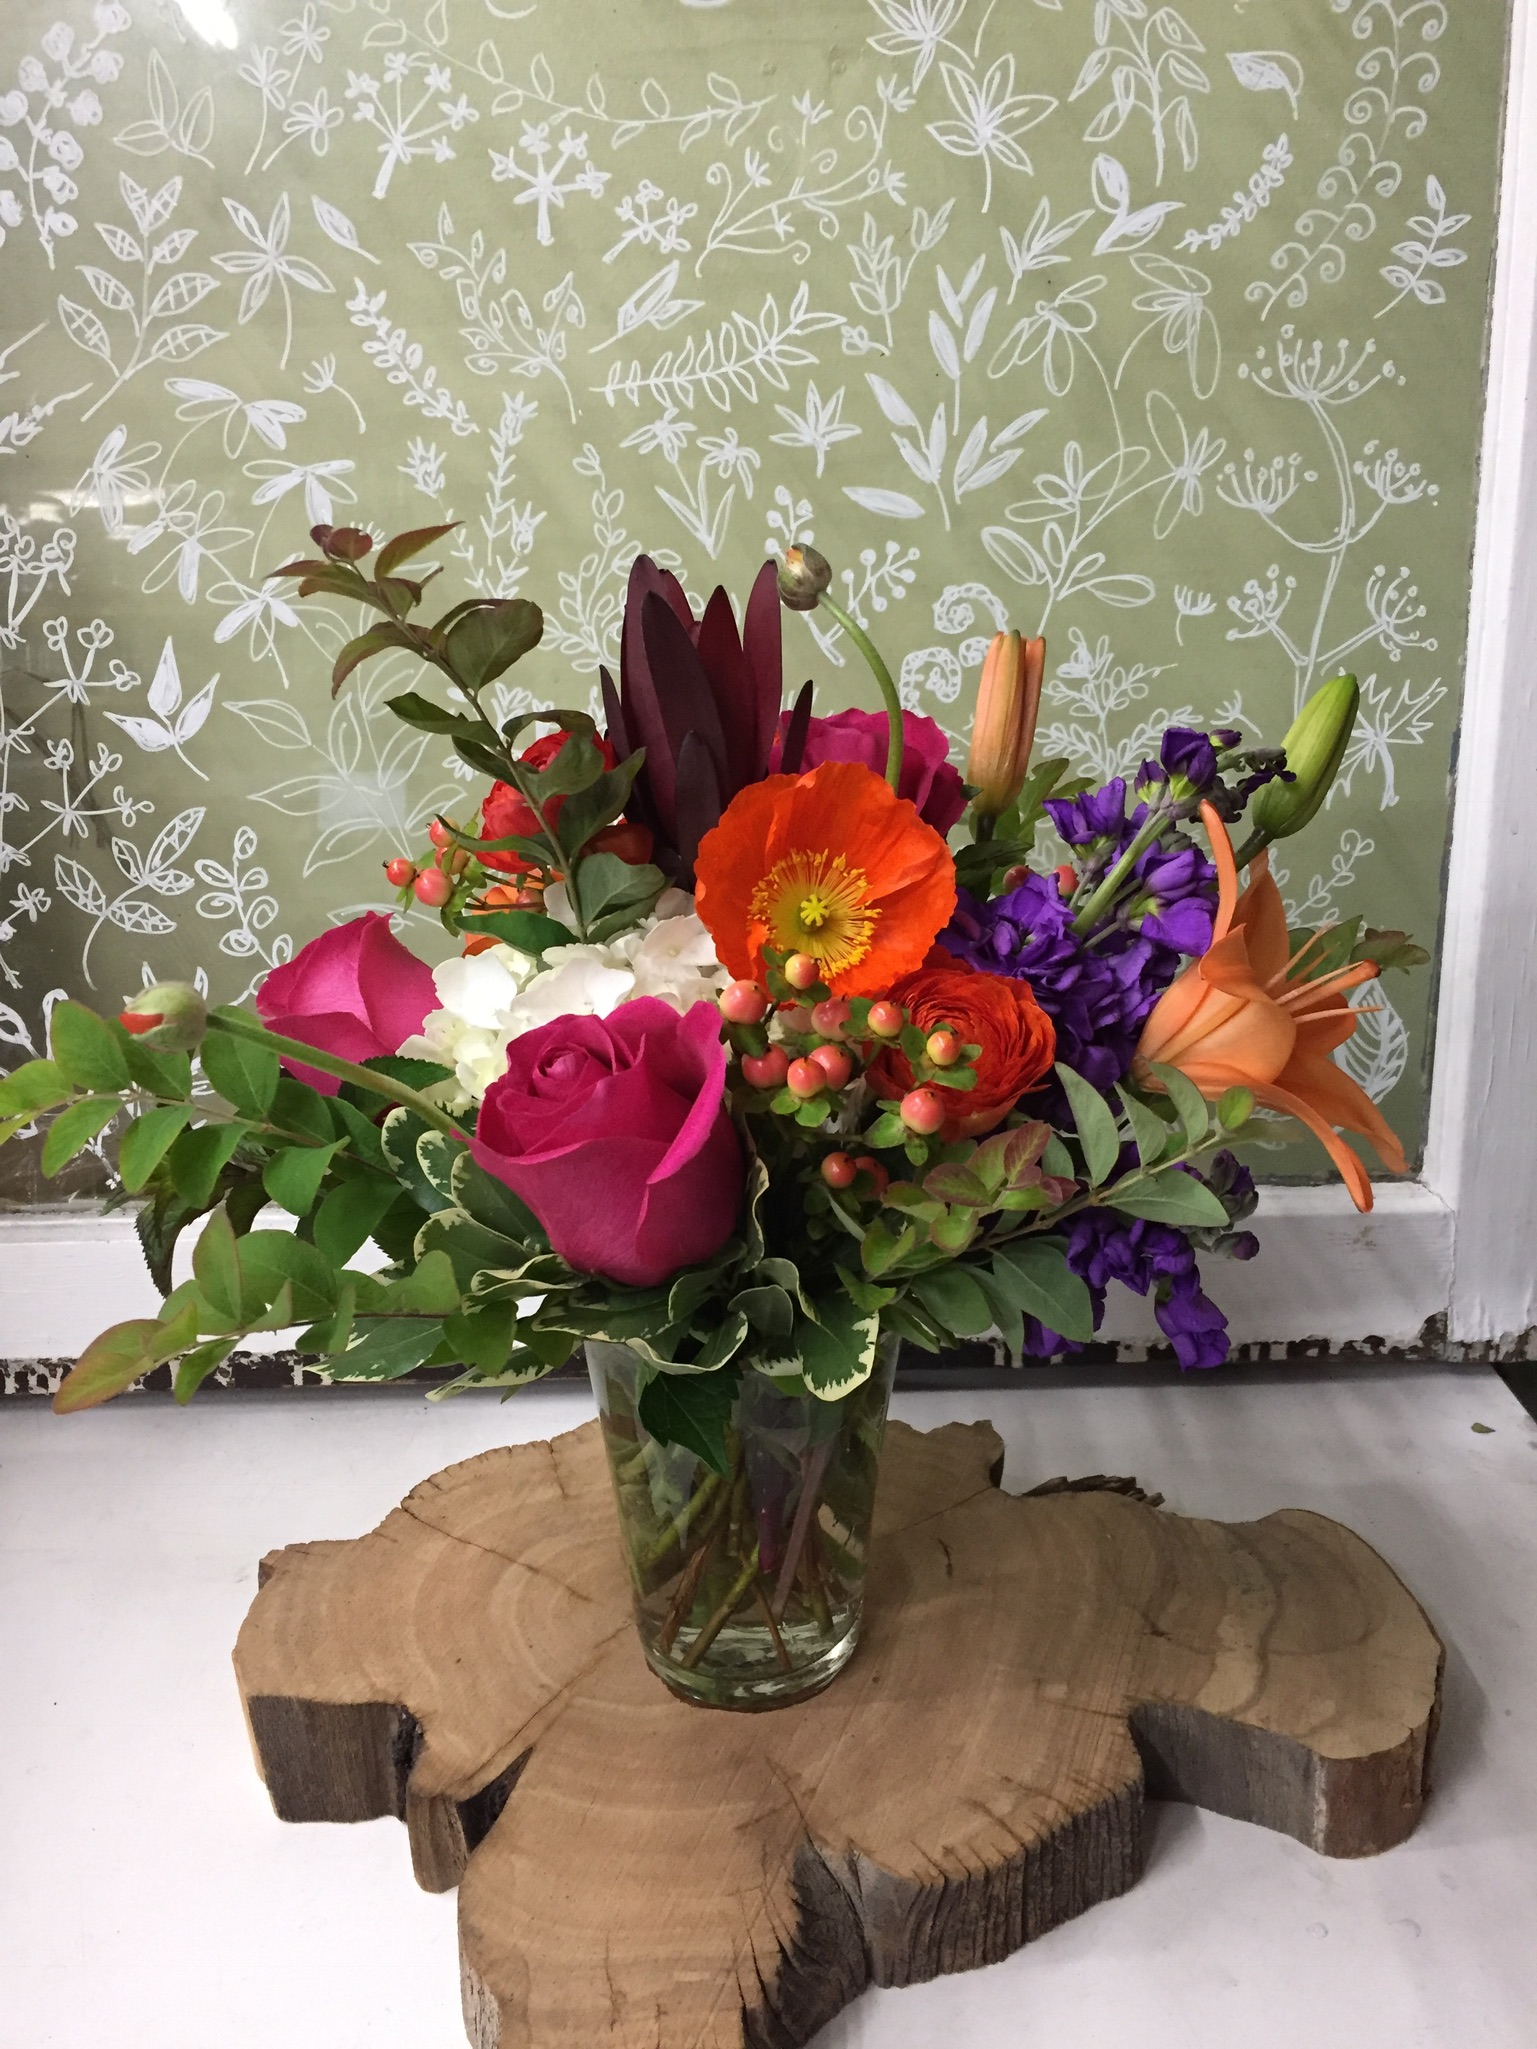 12. Vibrant with poppy and lily